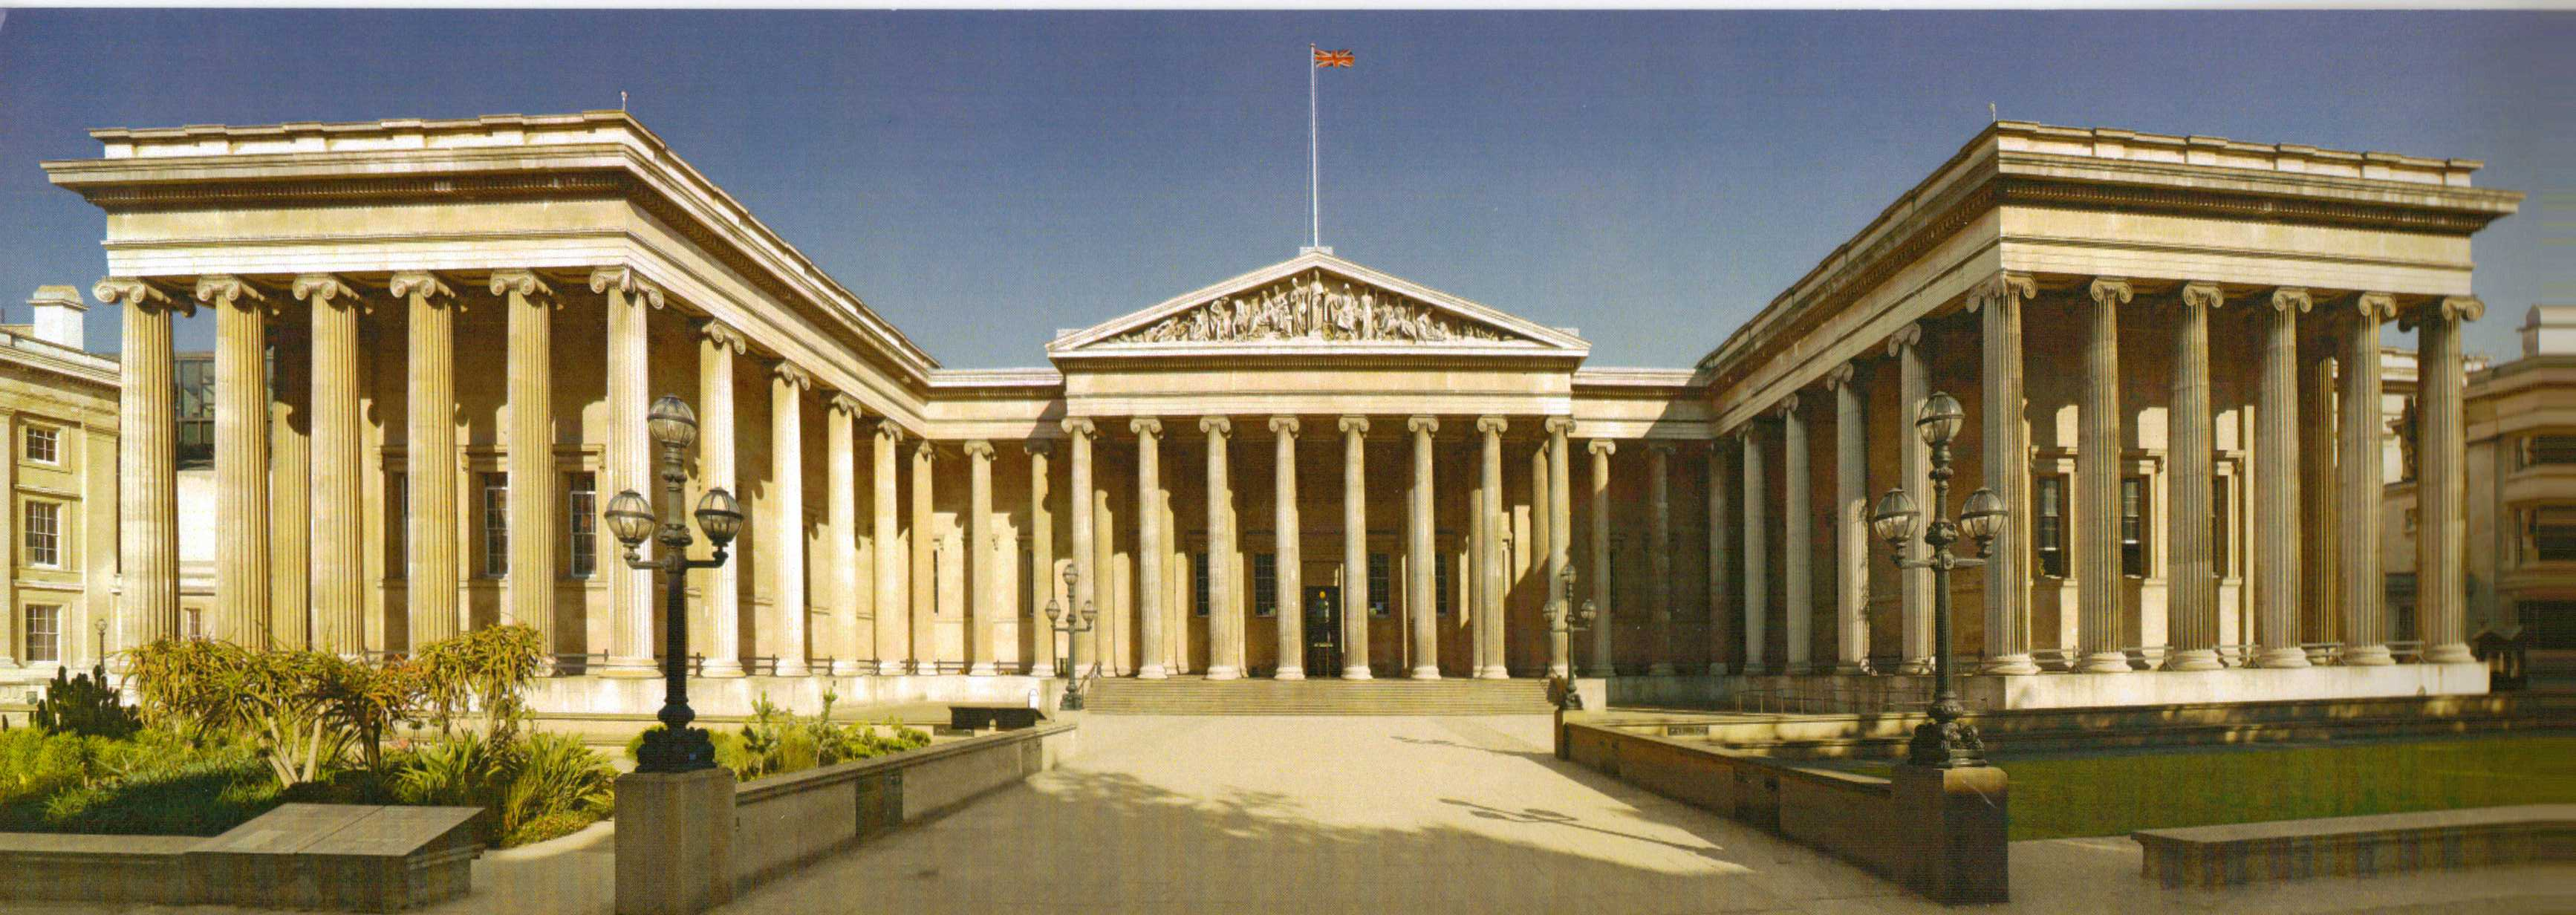 British Museum London, Ten Artifacts That Make Visiting The British Museum An Absolute ...